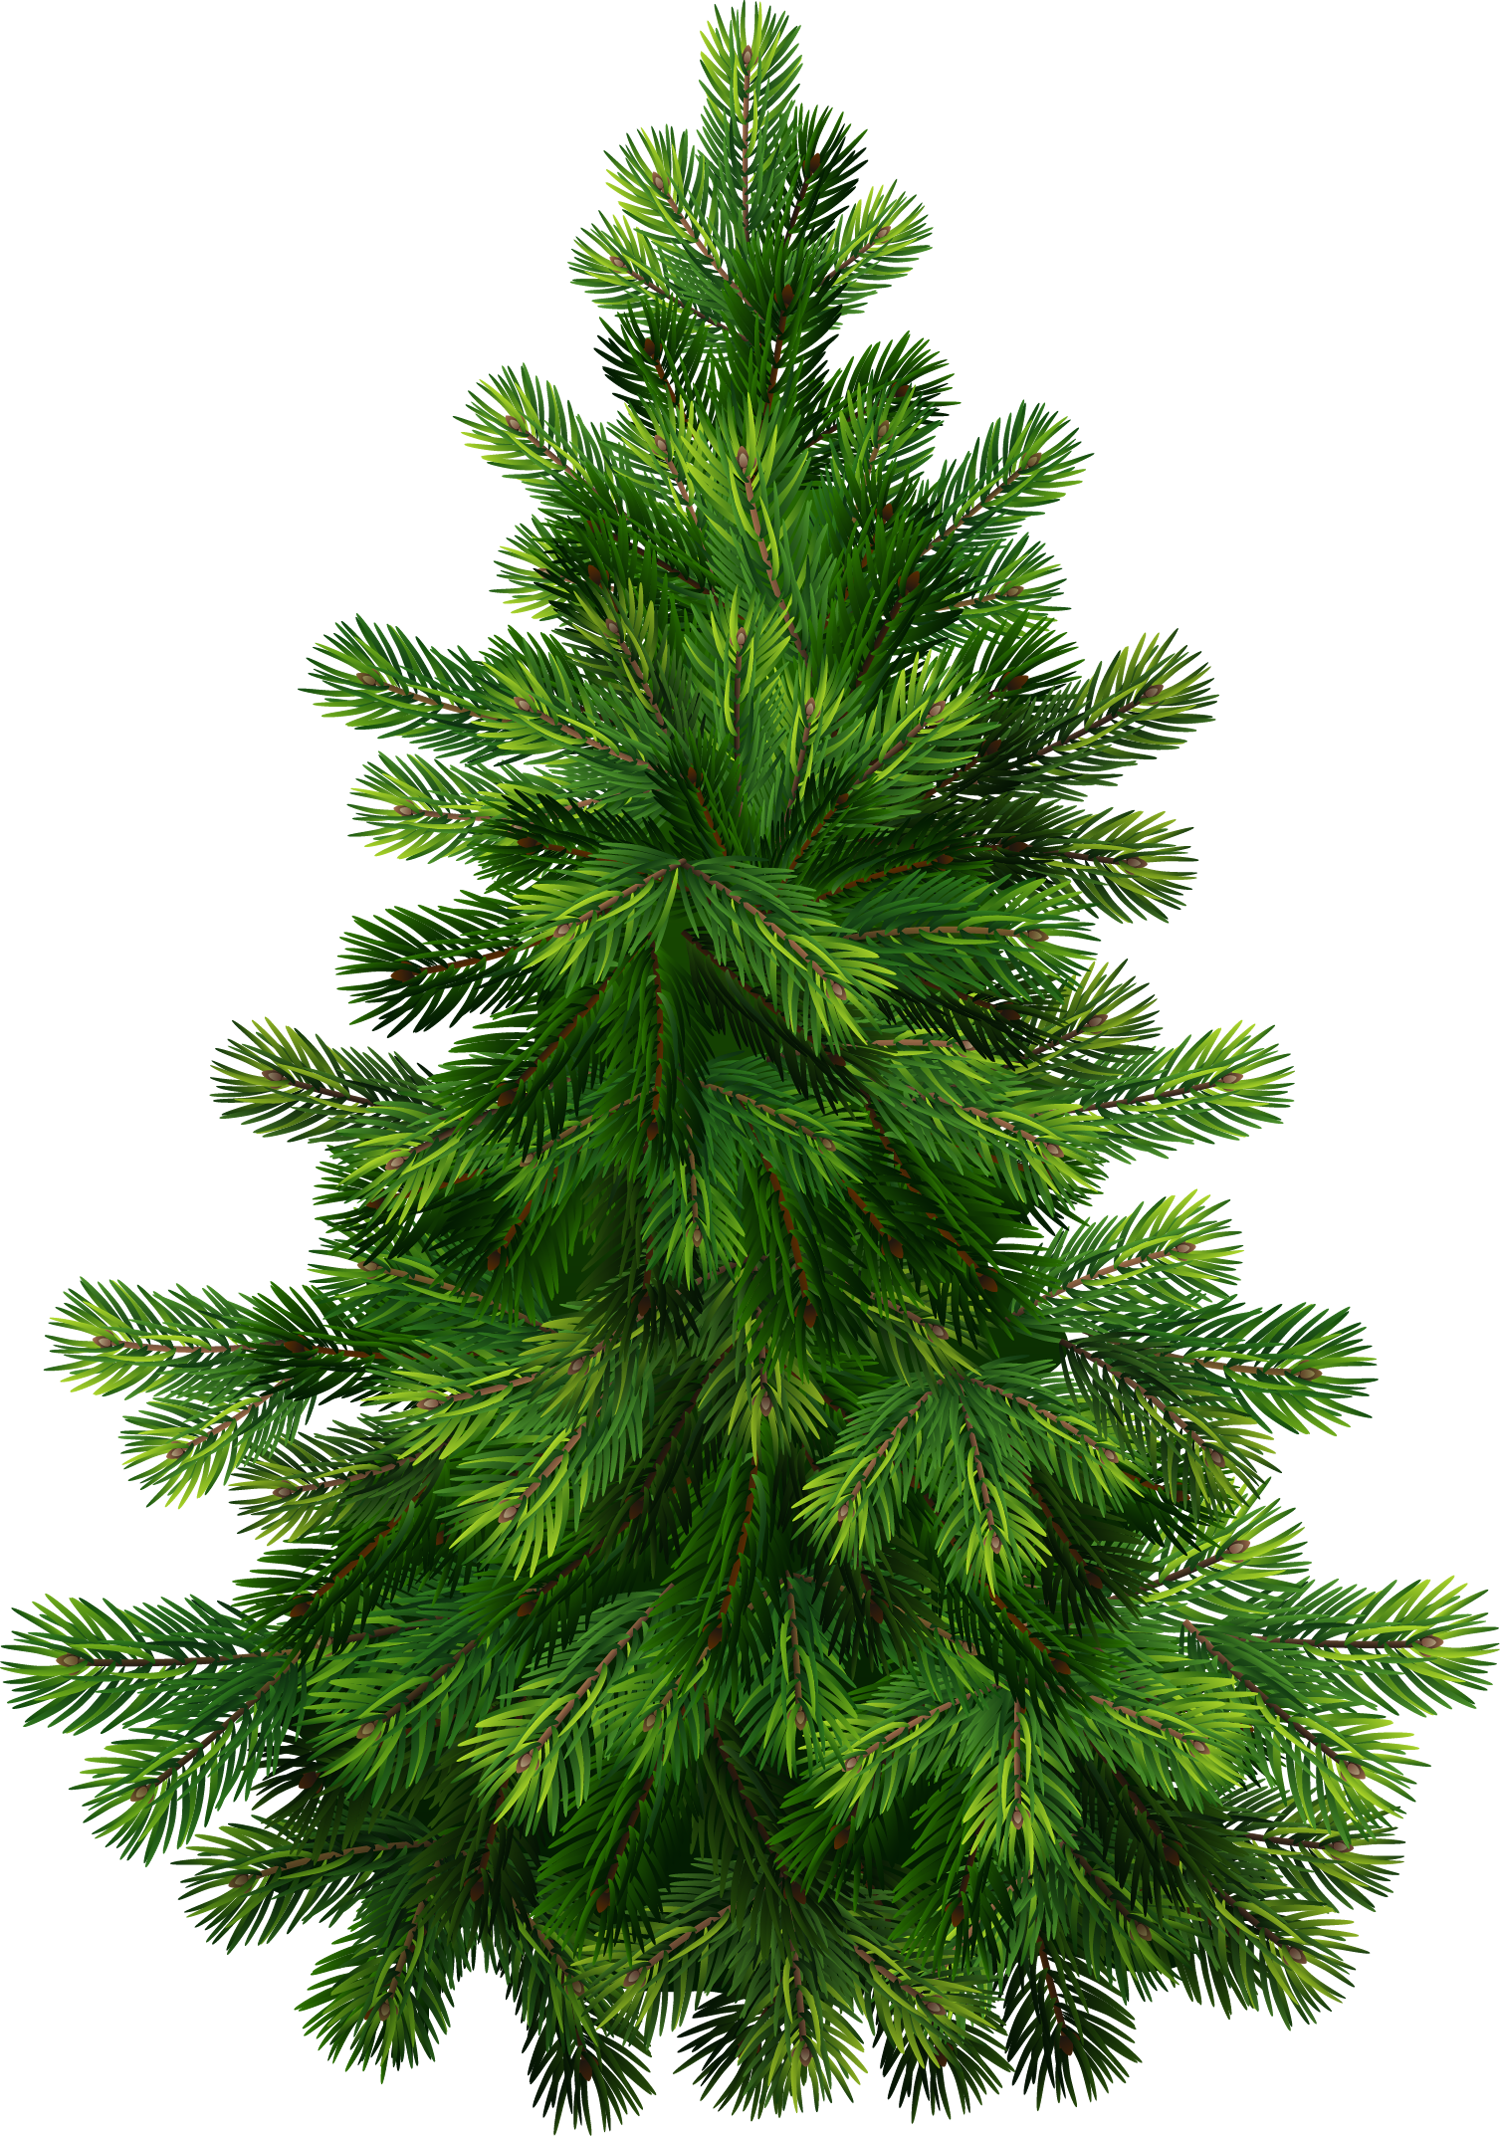 Transparent Pine Tree - Transparent Pine Tree PNG Clipart | Gallery Yopriceville - High ...